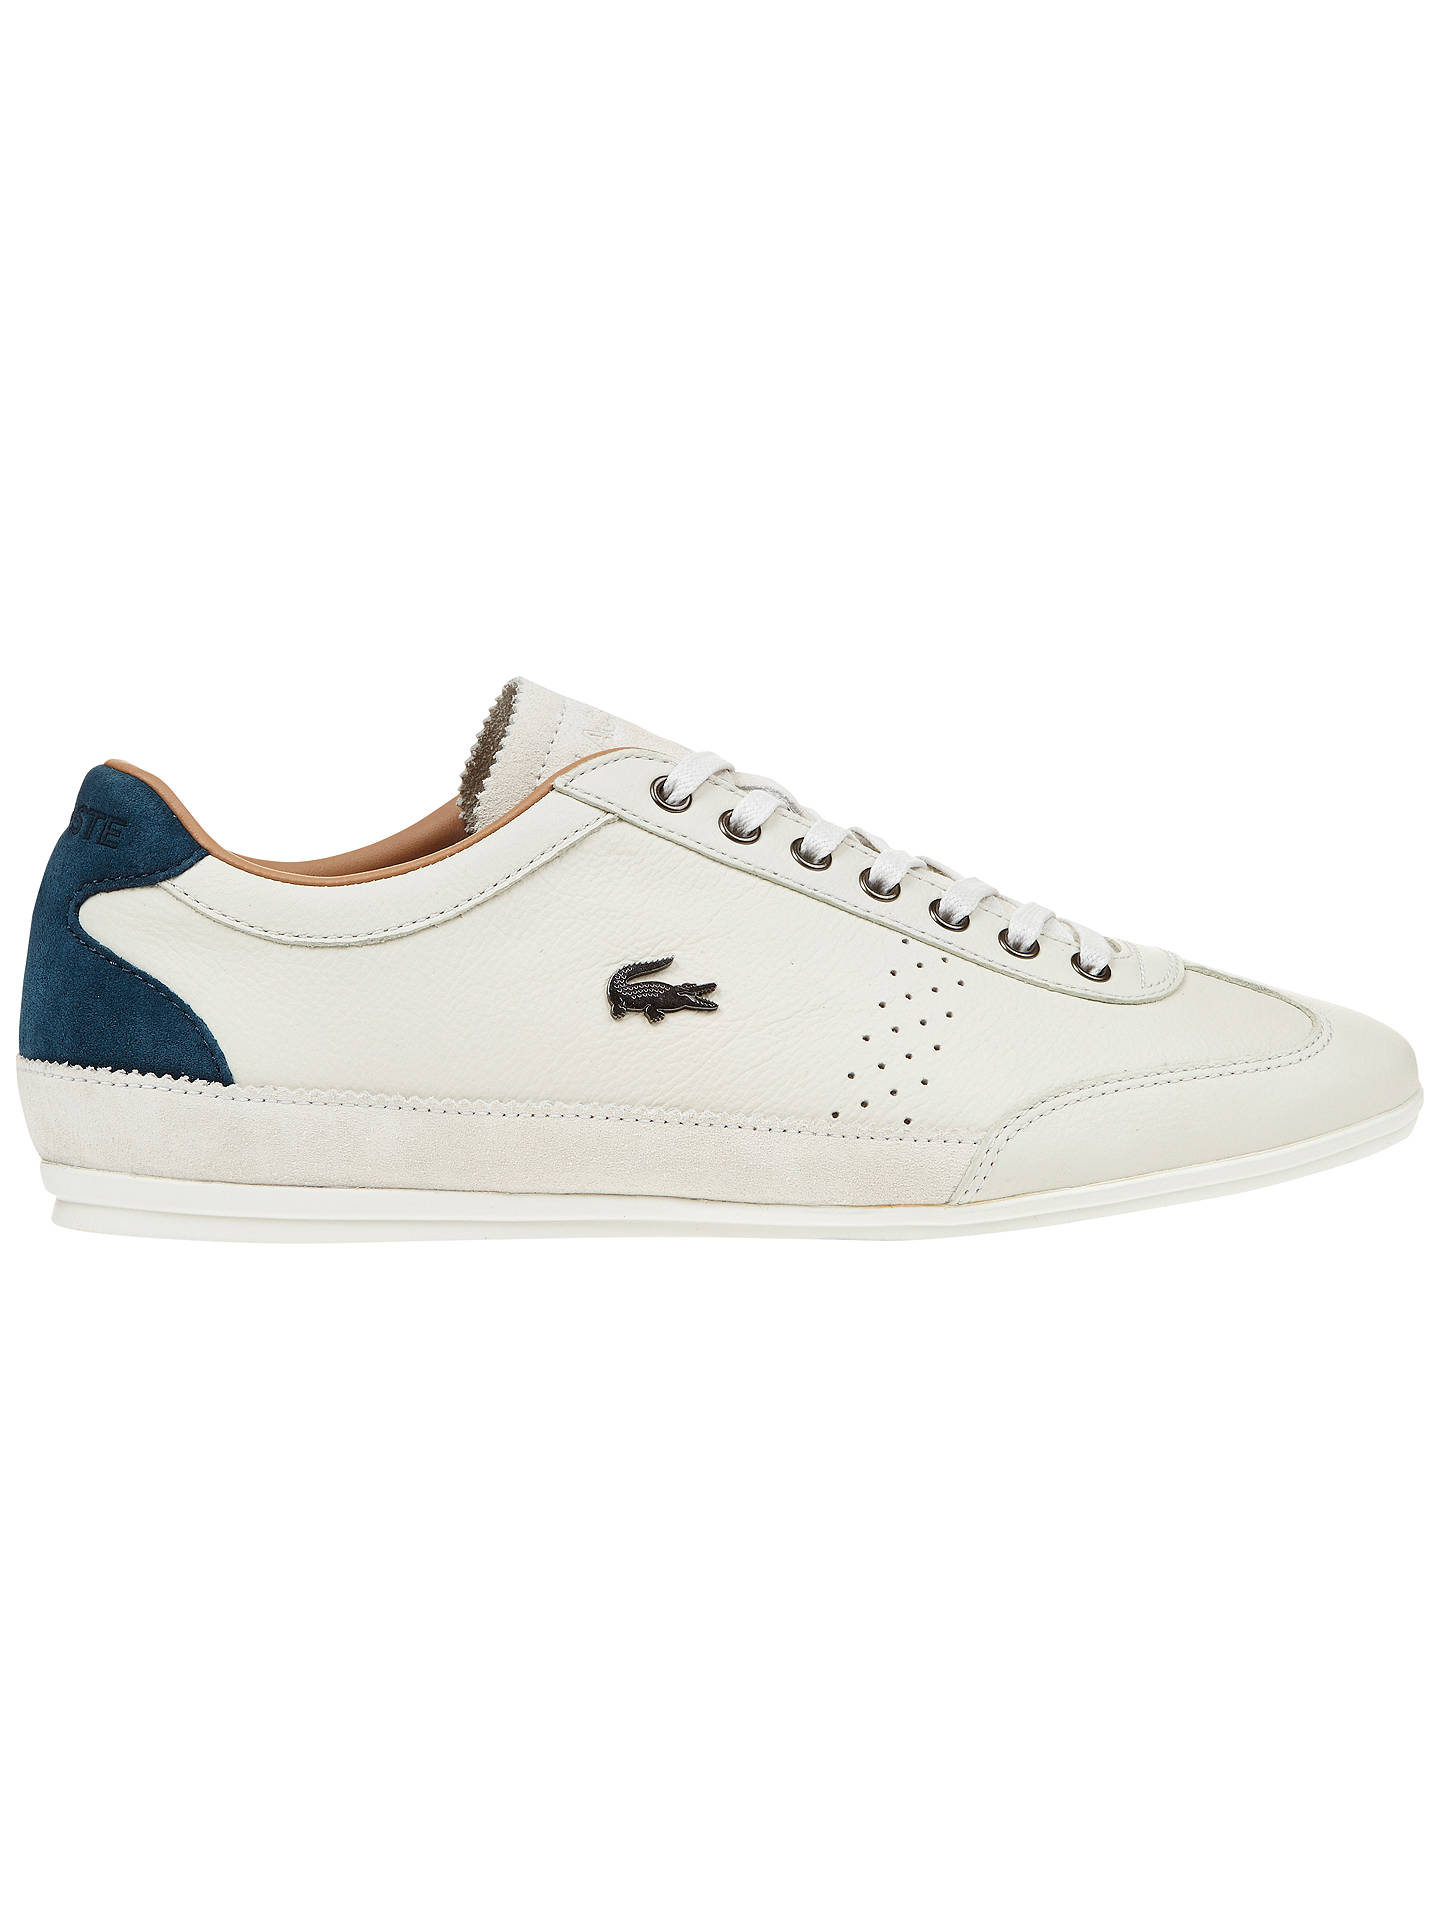 a91bfc206 Buy Lacoste Misano 34 Leather Trainers